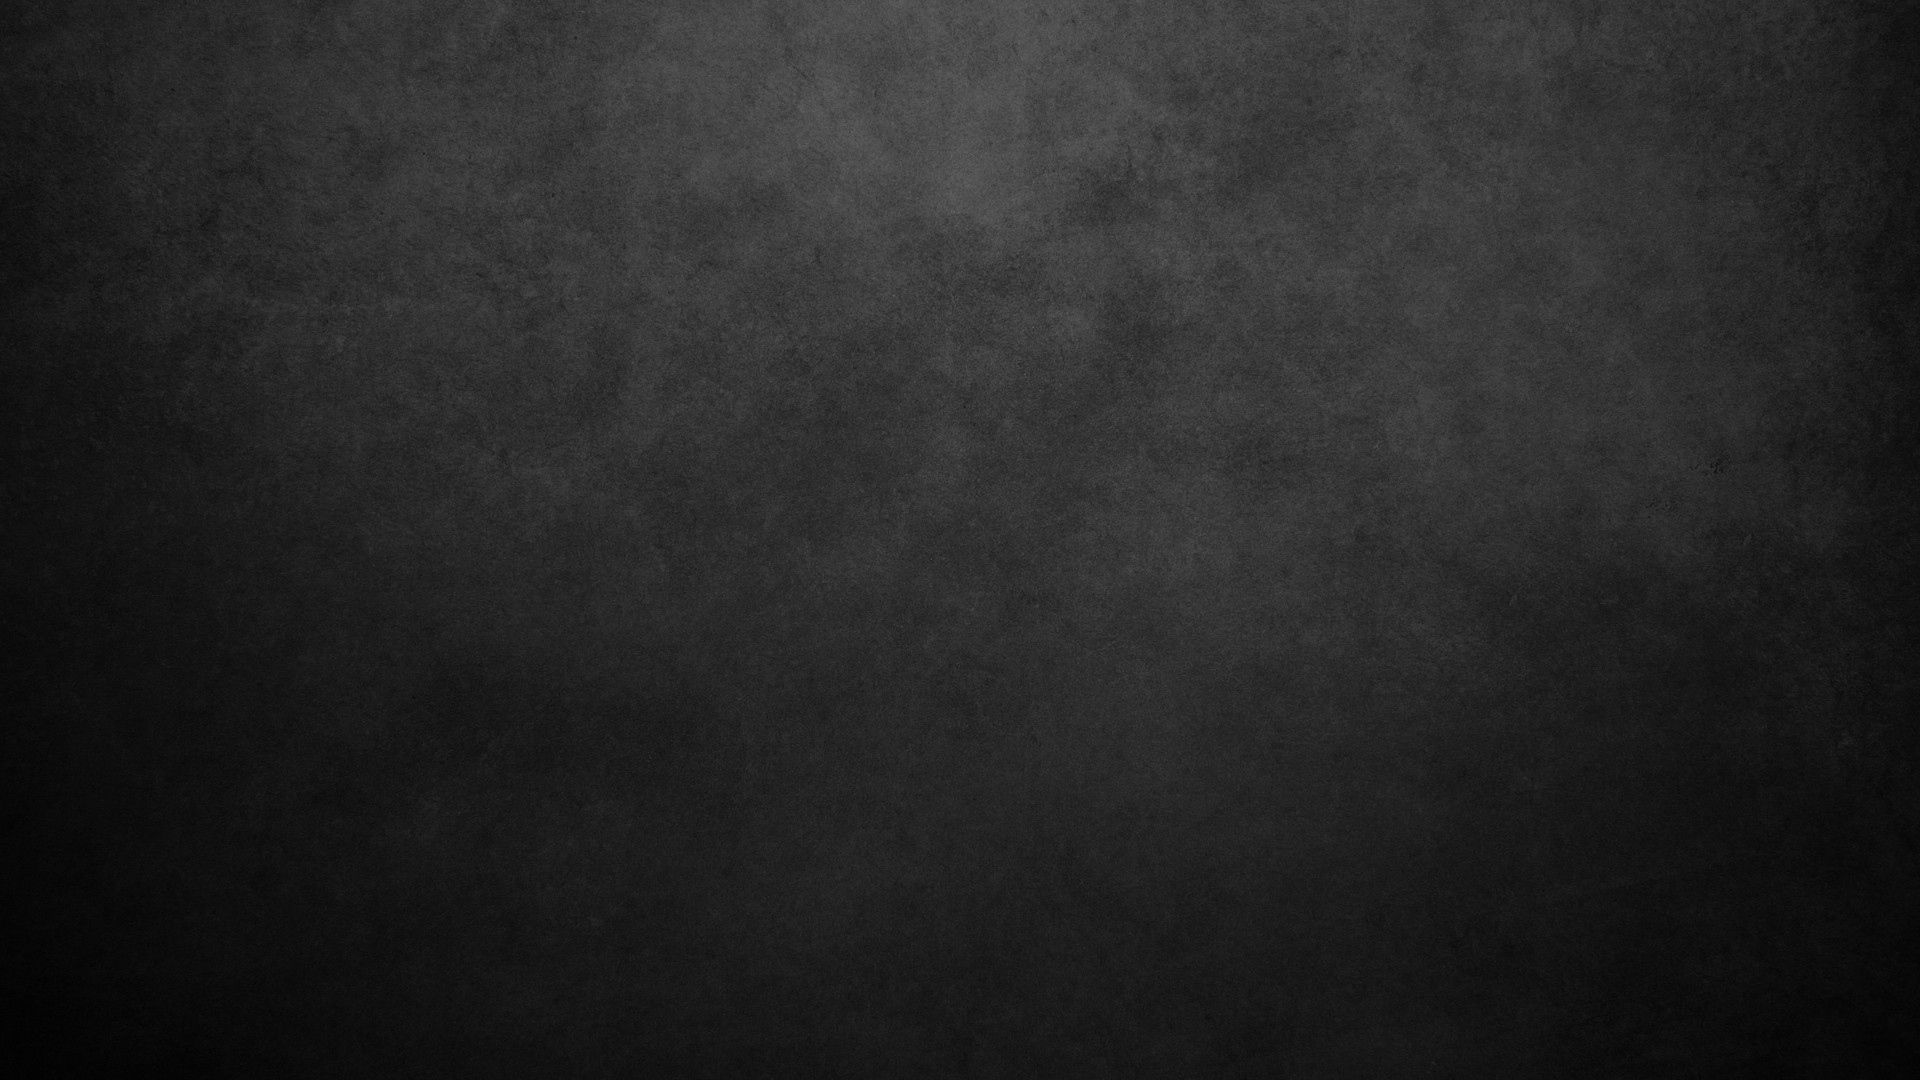 95667 download wallpaper Textures, Background, Dark, Texture, Surface, Stains, Spots screensavers and pictures for free